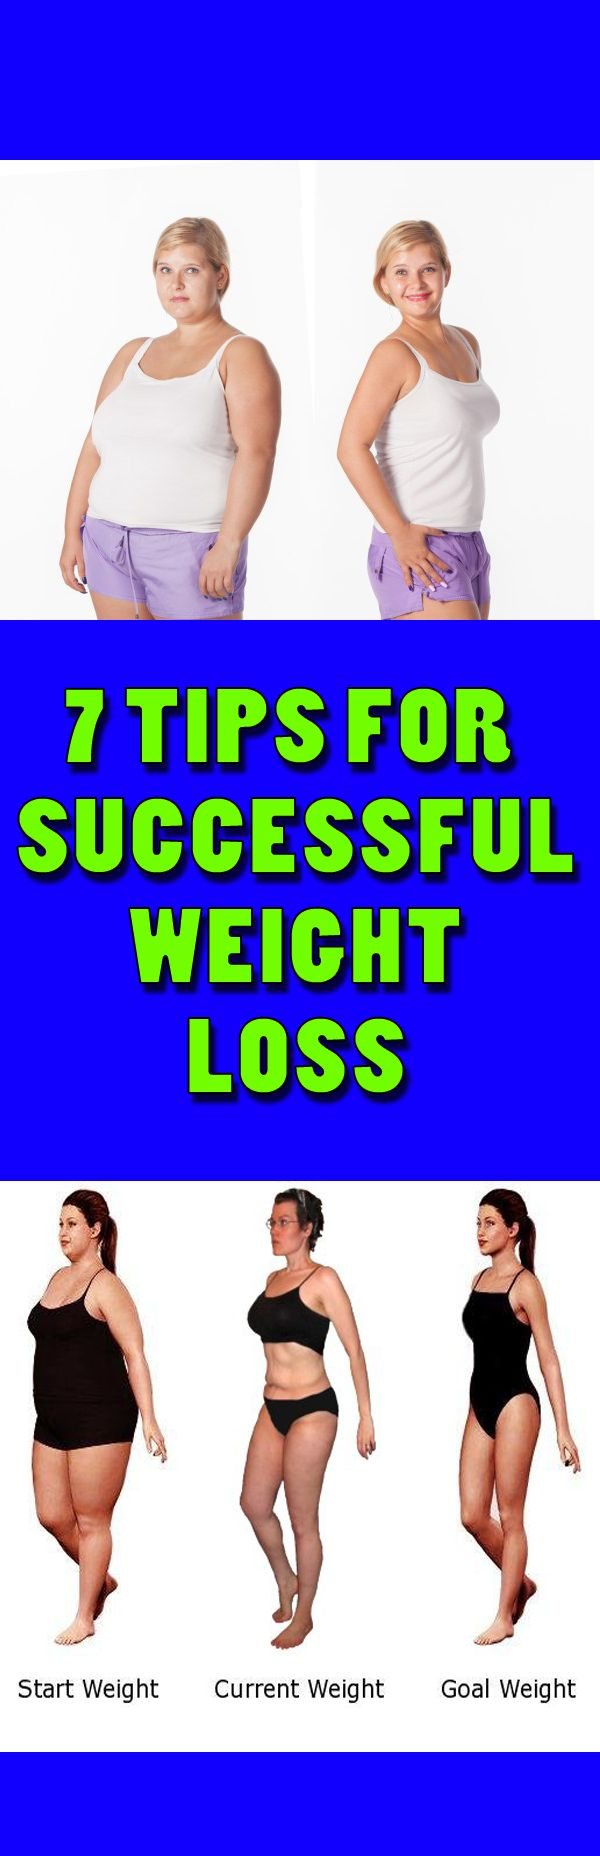 7 Tips for Successful Weight Loss